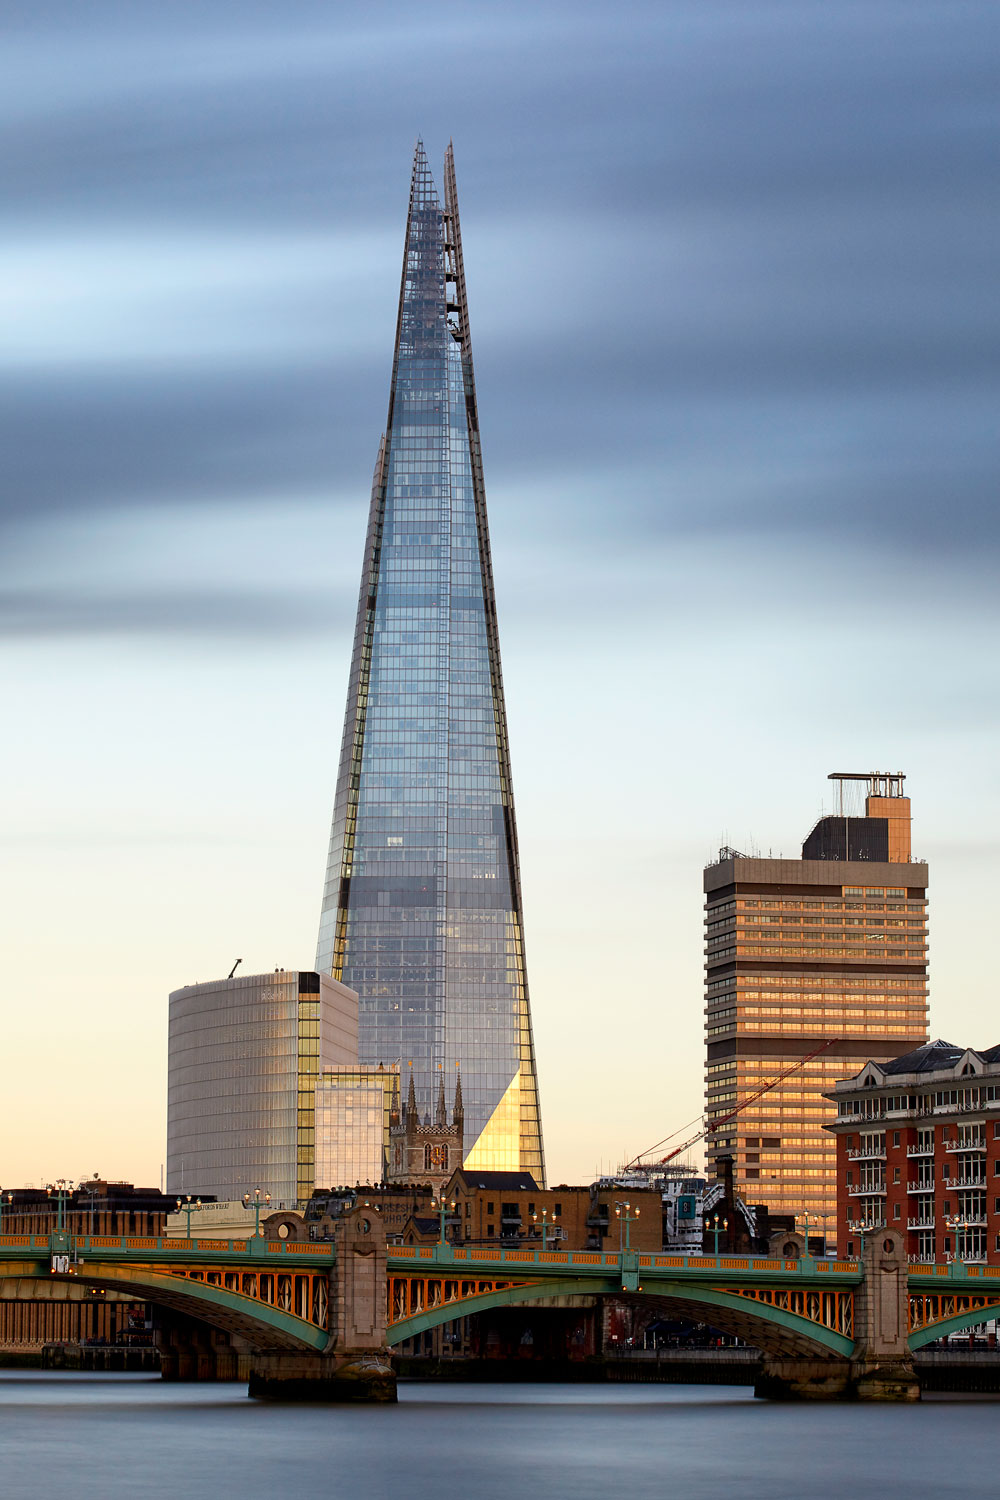 The Shard photographed in March 2017 by Marc Cluet